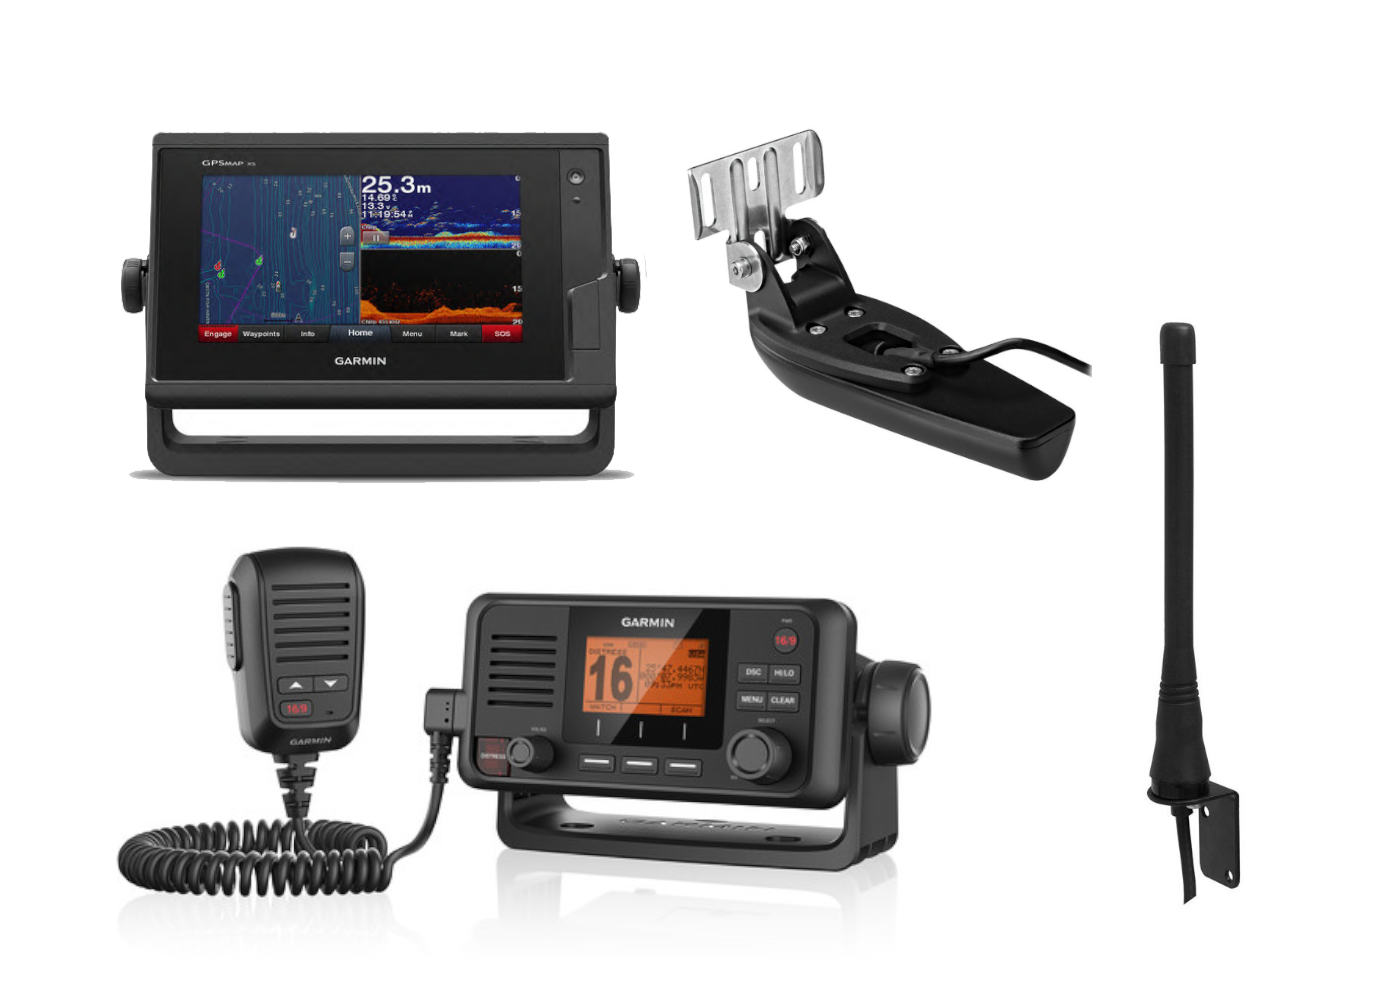 Electronics Pack 4 - Garmin 722XS & VHF115i Kits